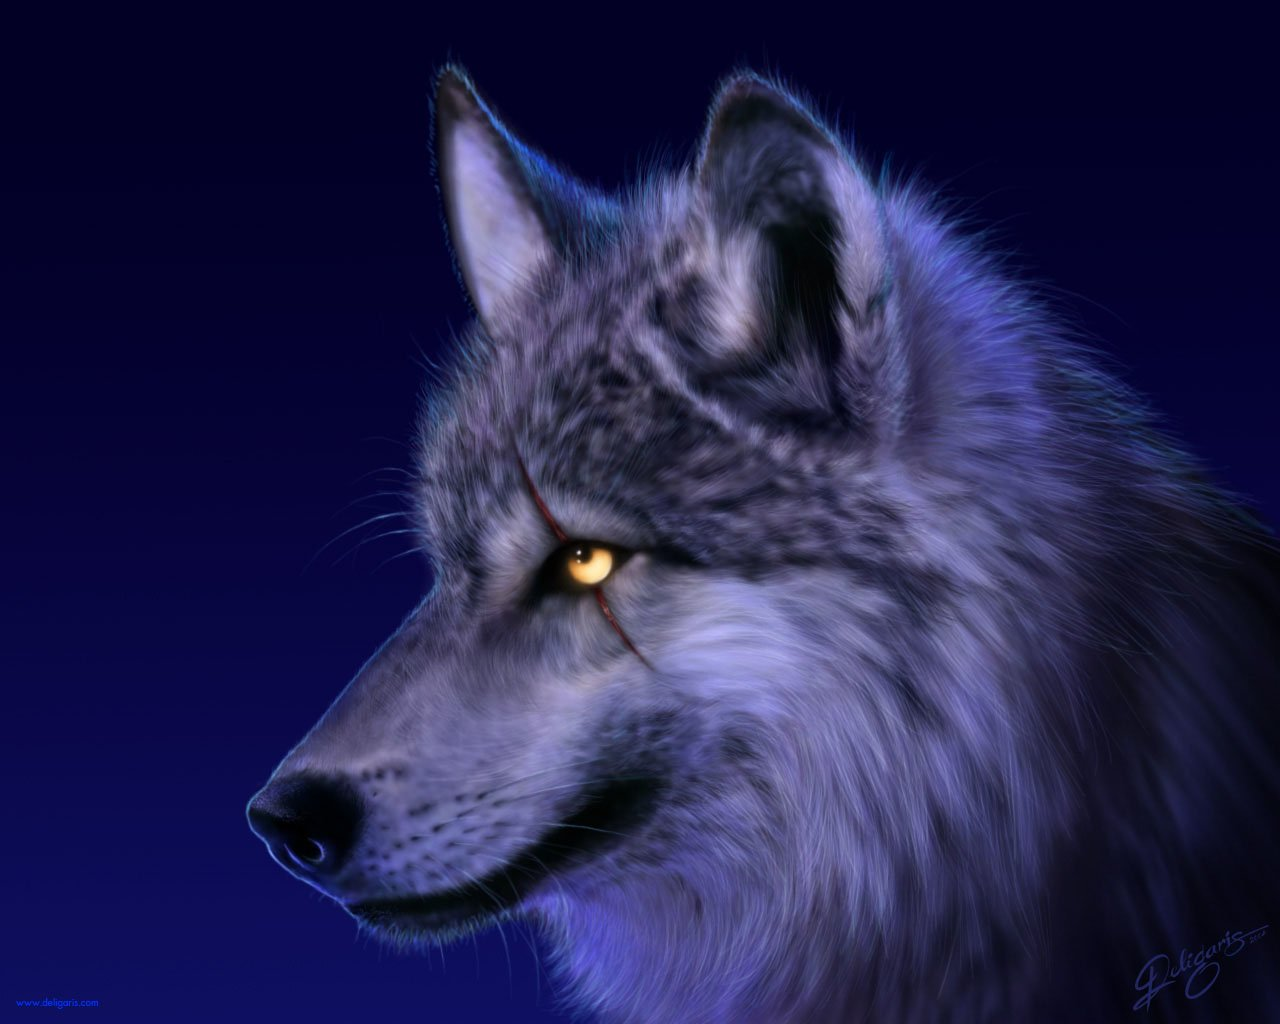 41617 Animal HD Wallpapers | Backgrounds - Wallpaper Abyss